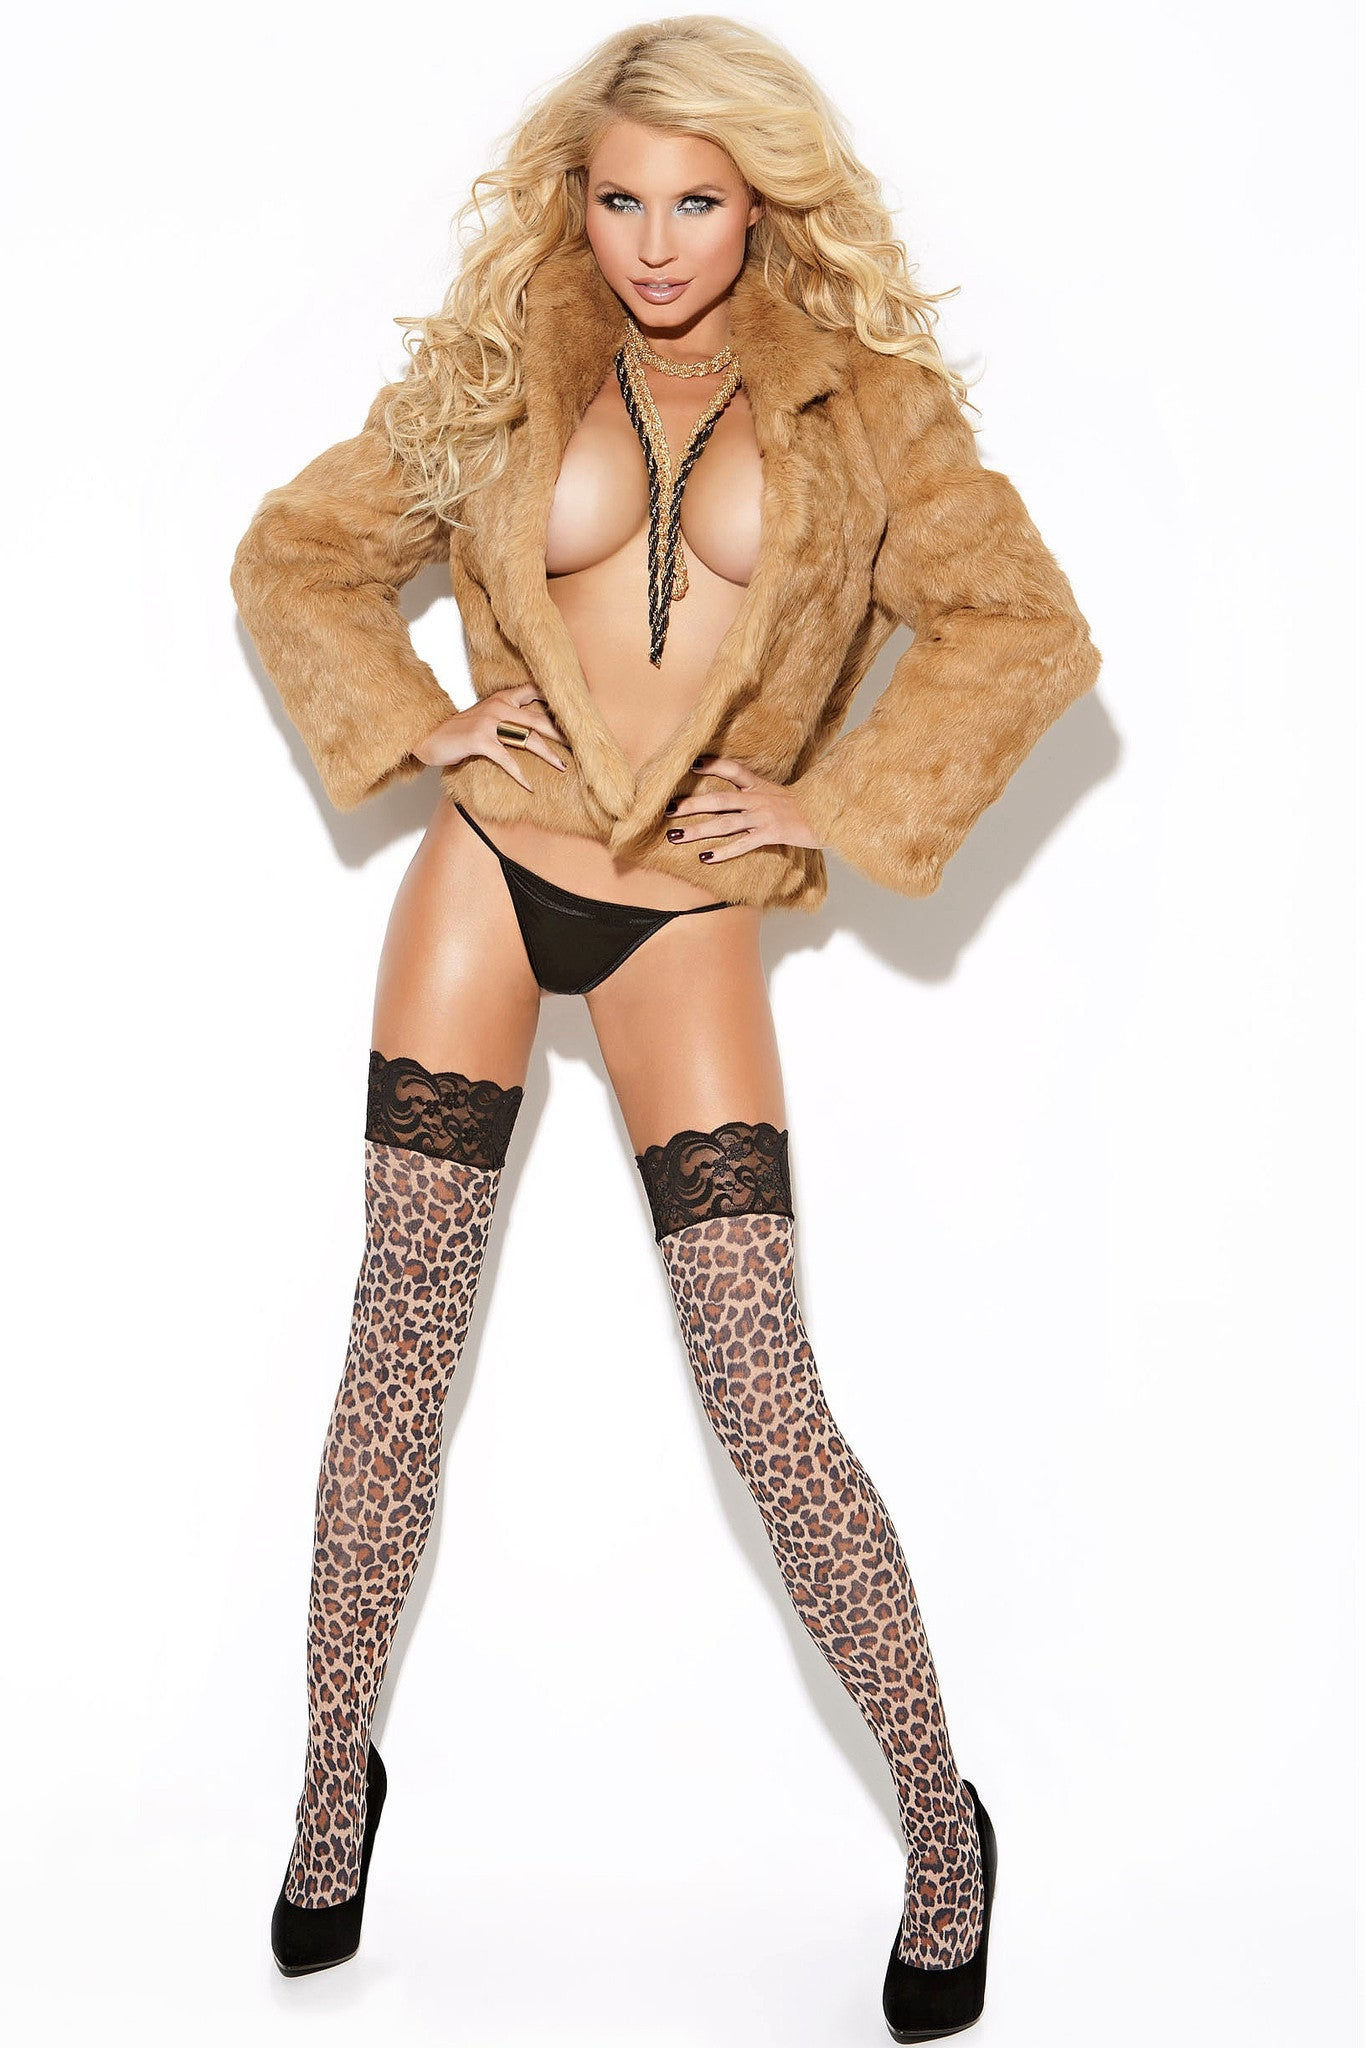 EM-8619 Leopard stockings - Sexylingerieland  - 2